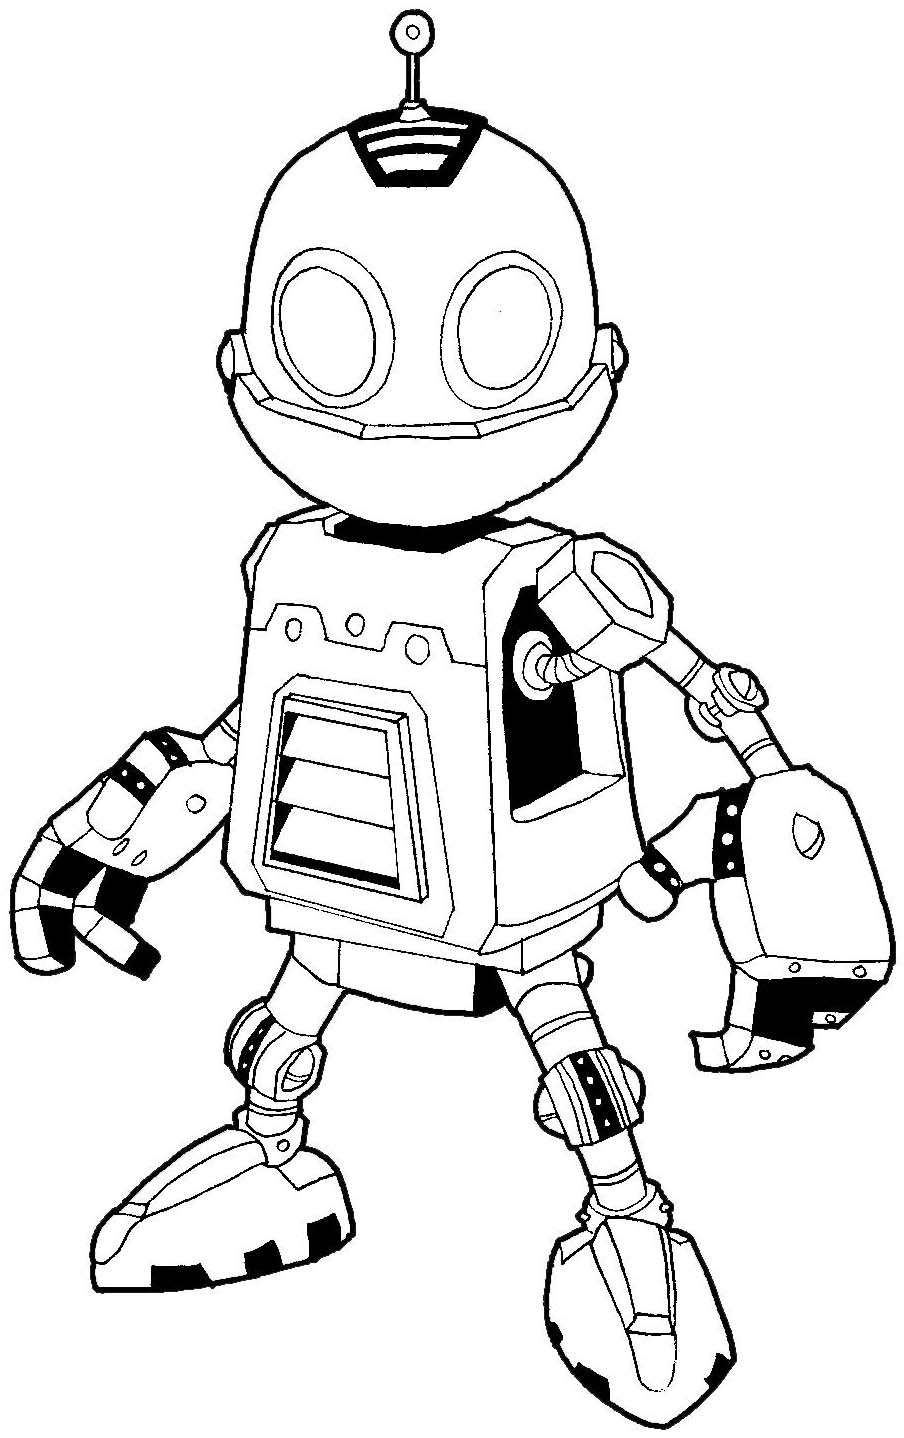 How to Draw Clank from Ratchet & Clank in Easy Steps